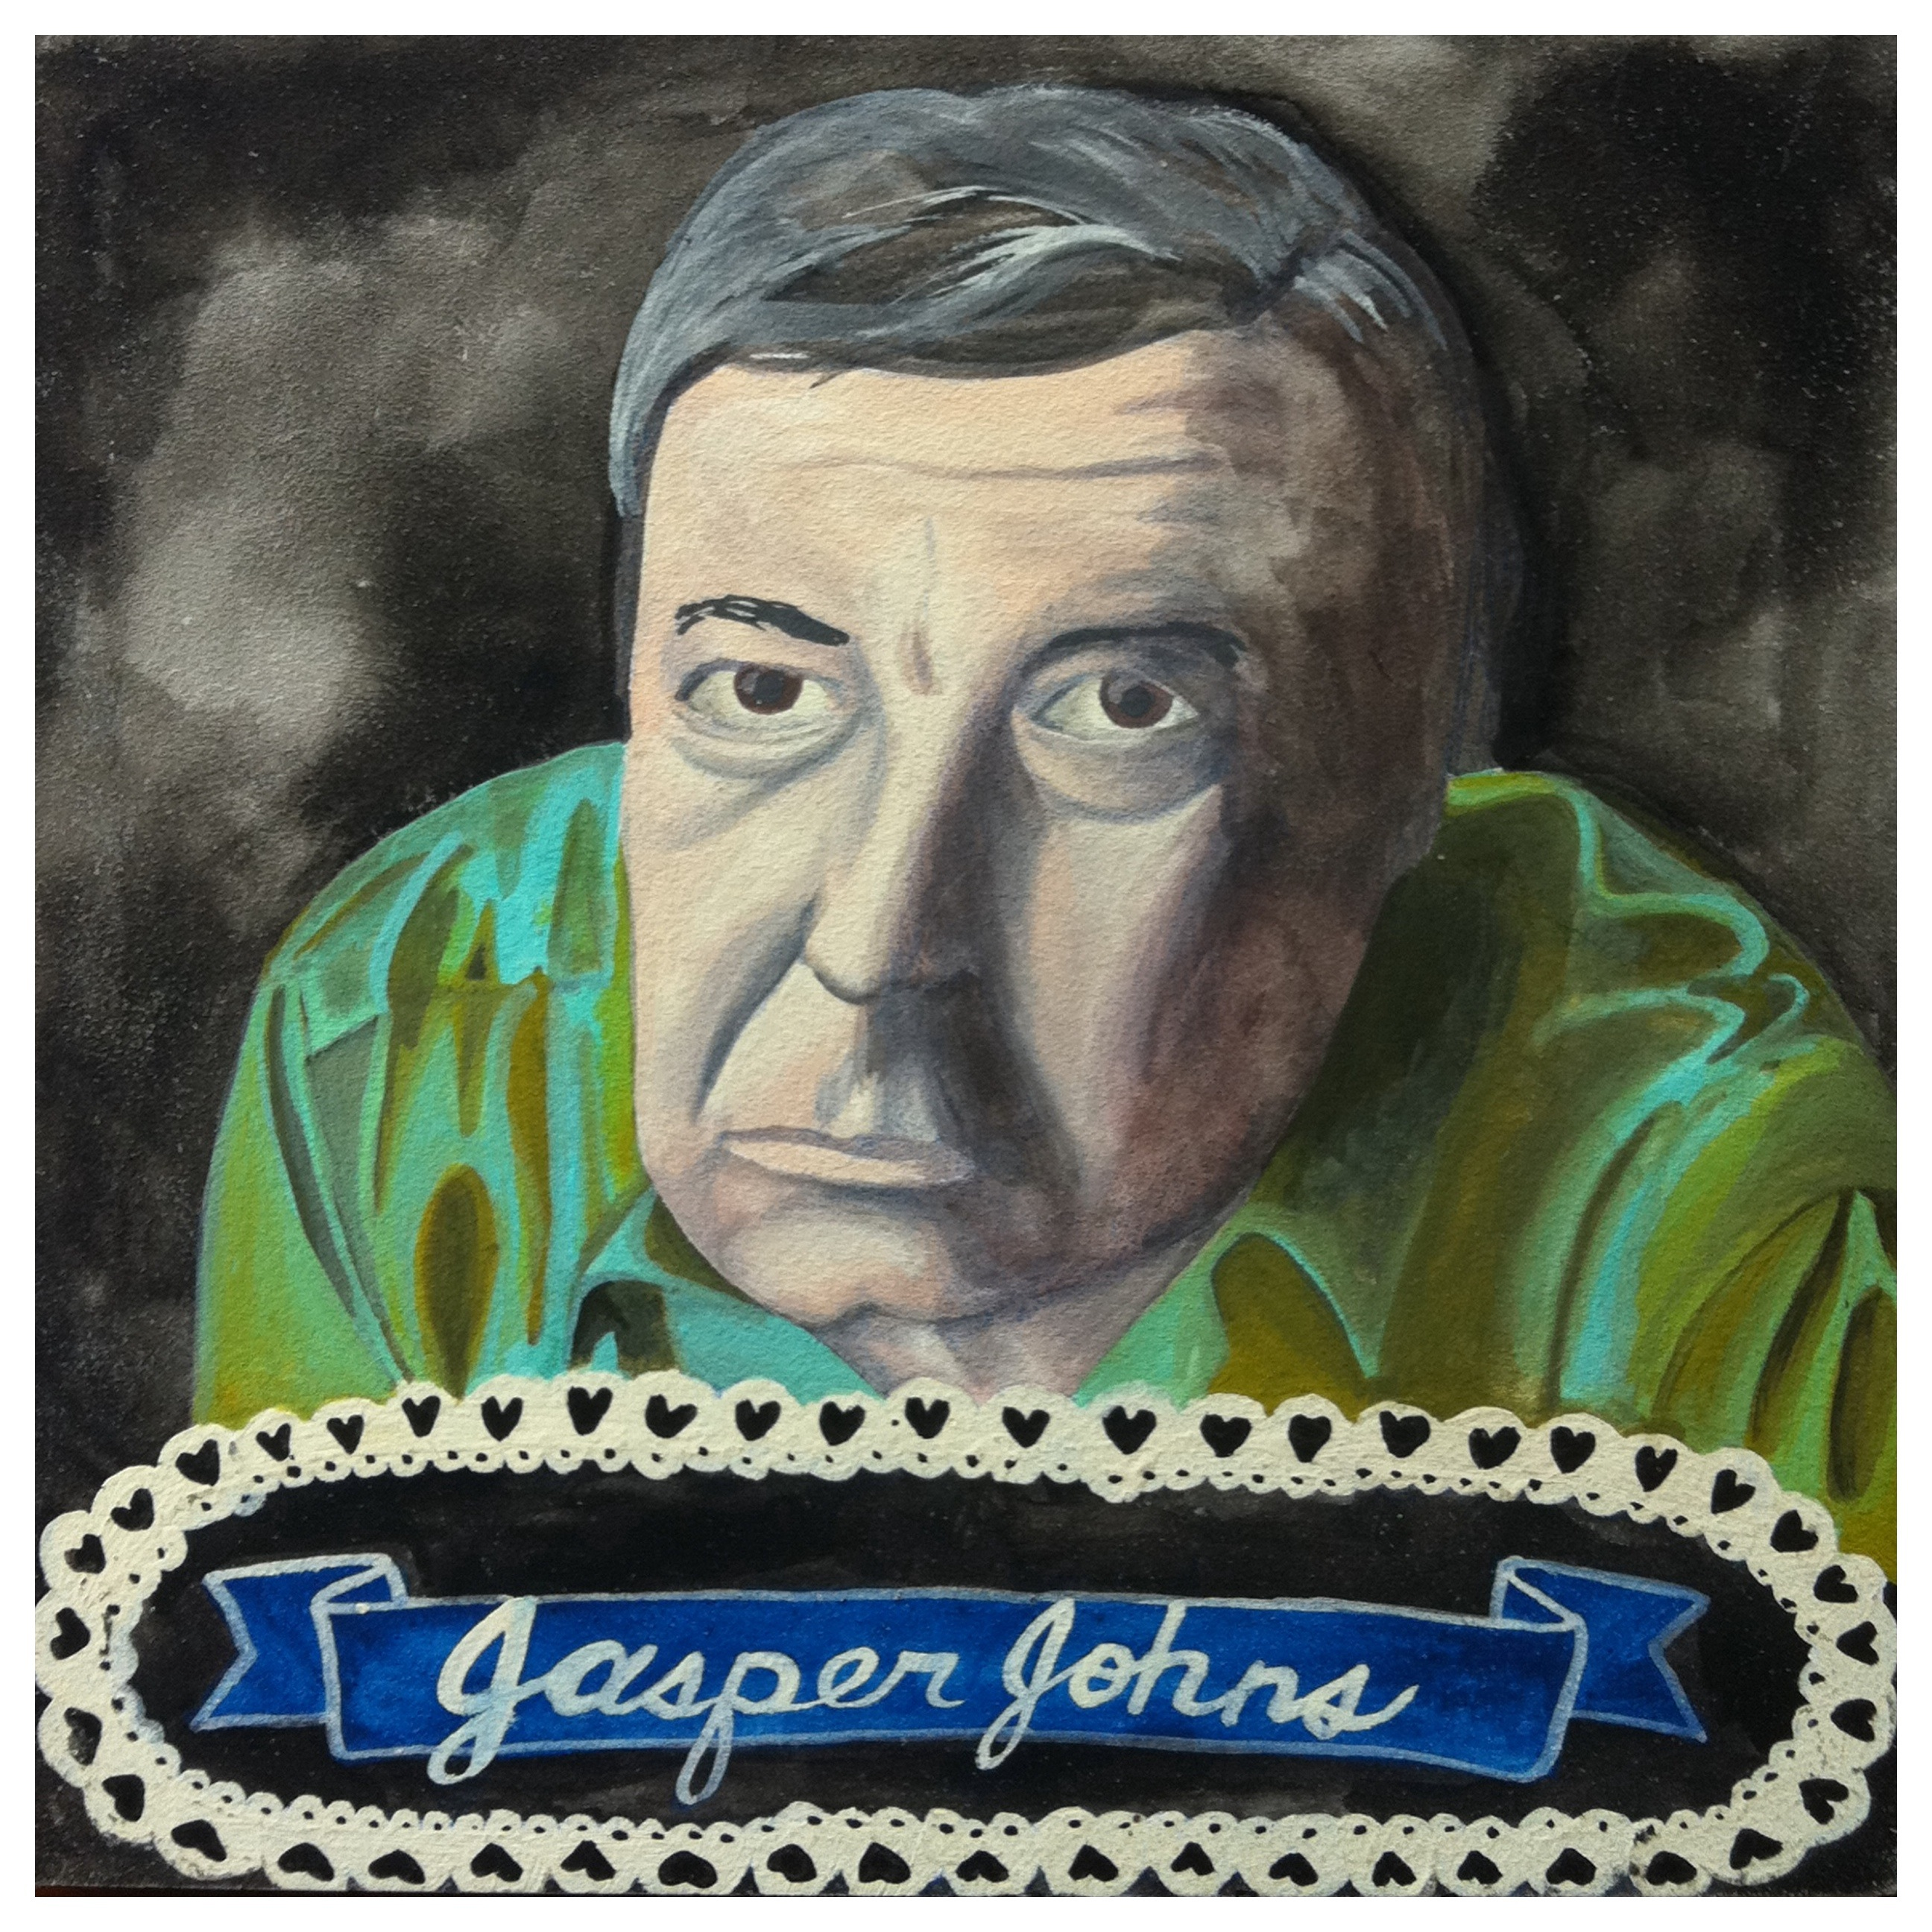 100 Southerners portraits by Lydia Walls: Jasper Johns